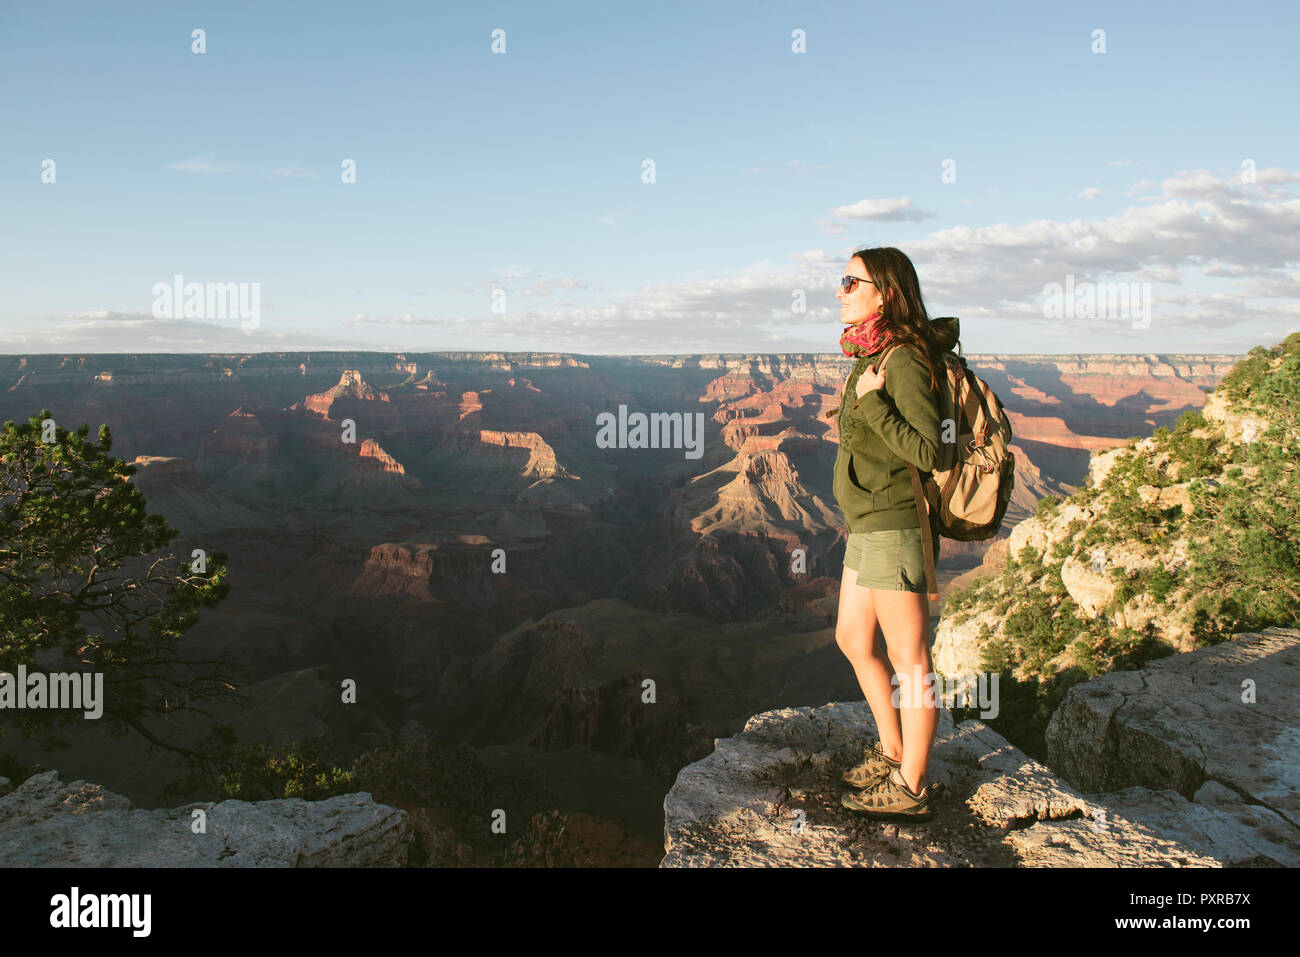 USA, Arizona, Grand Canyon National Park, Young woman with backpack exploring and enjoying the landscape at sunset - Stock Image